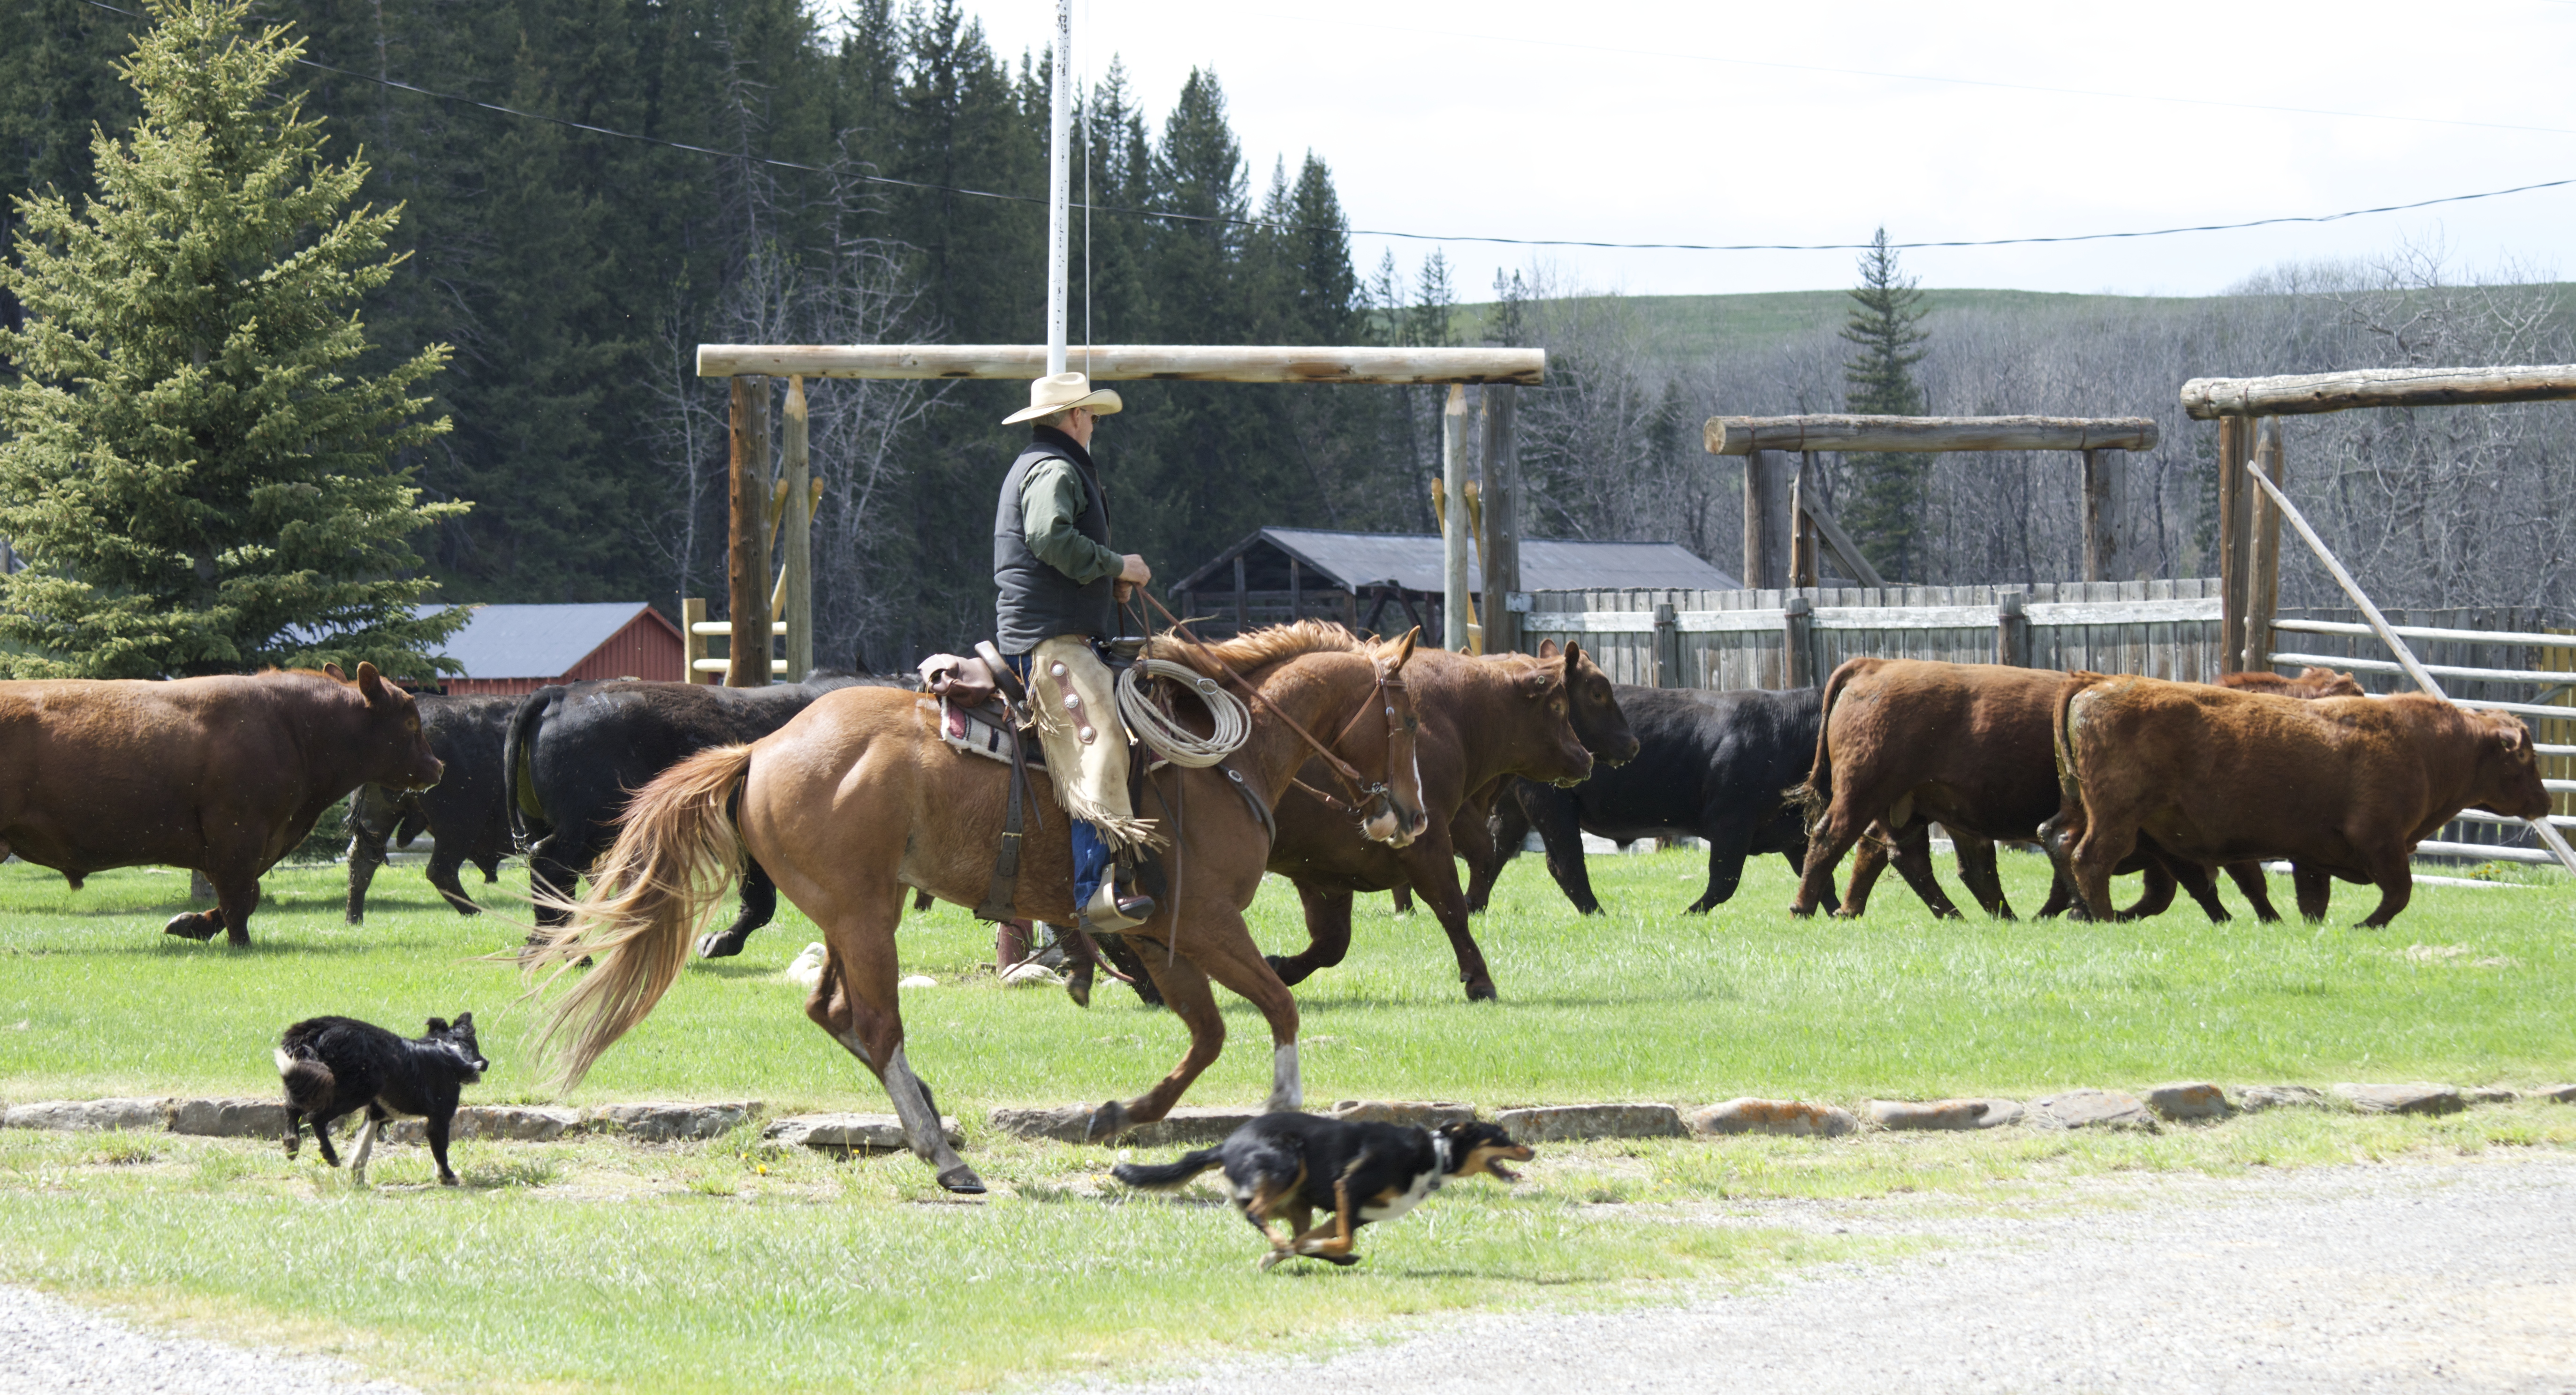 The Oh Ranch Opens Its Gates For A Special One Day Event